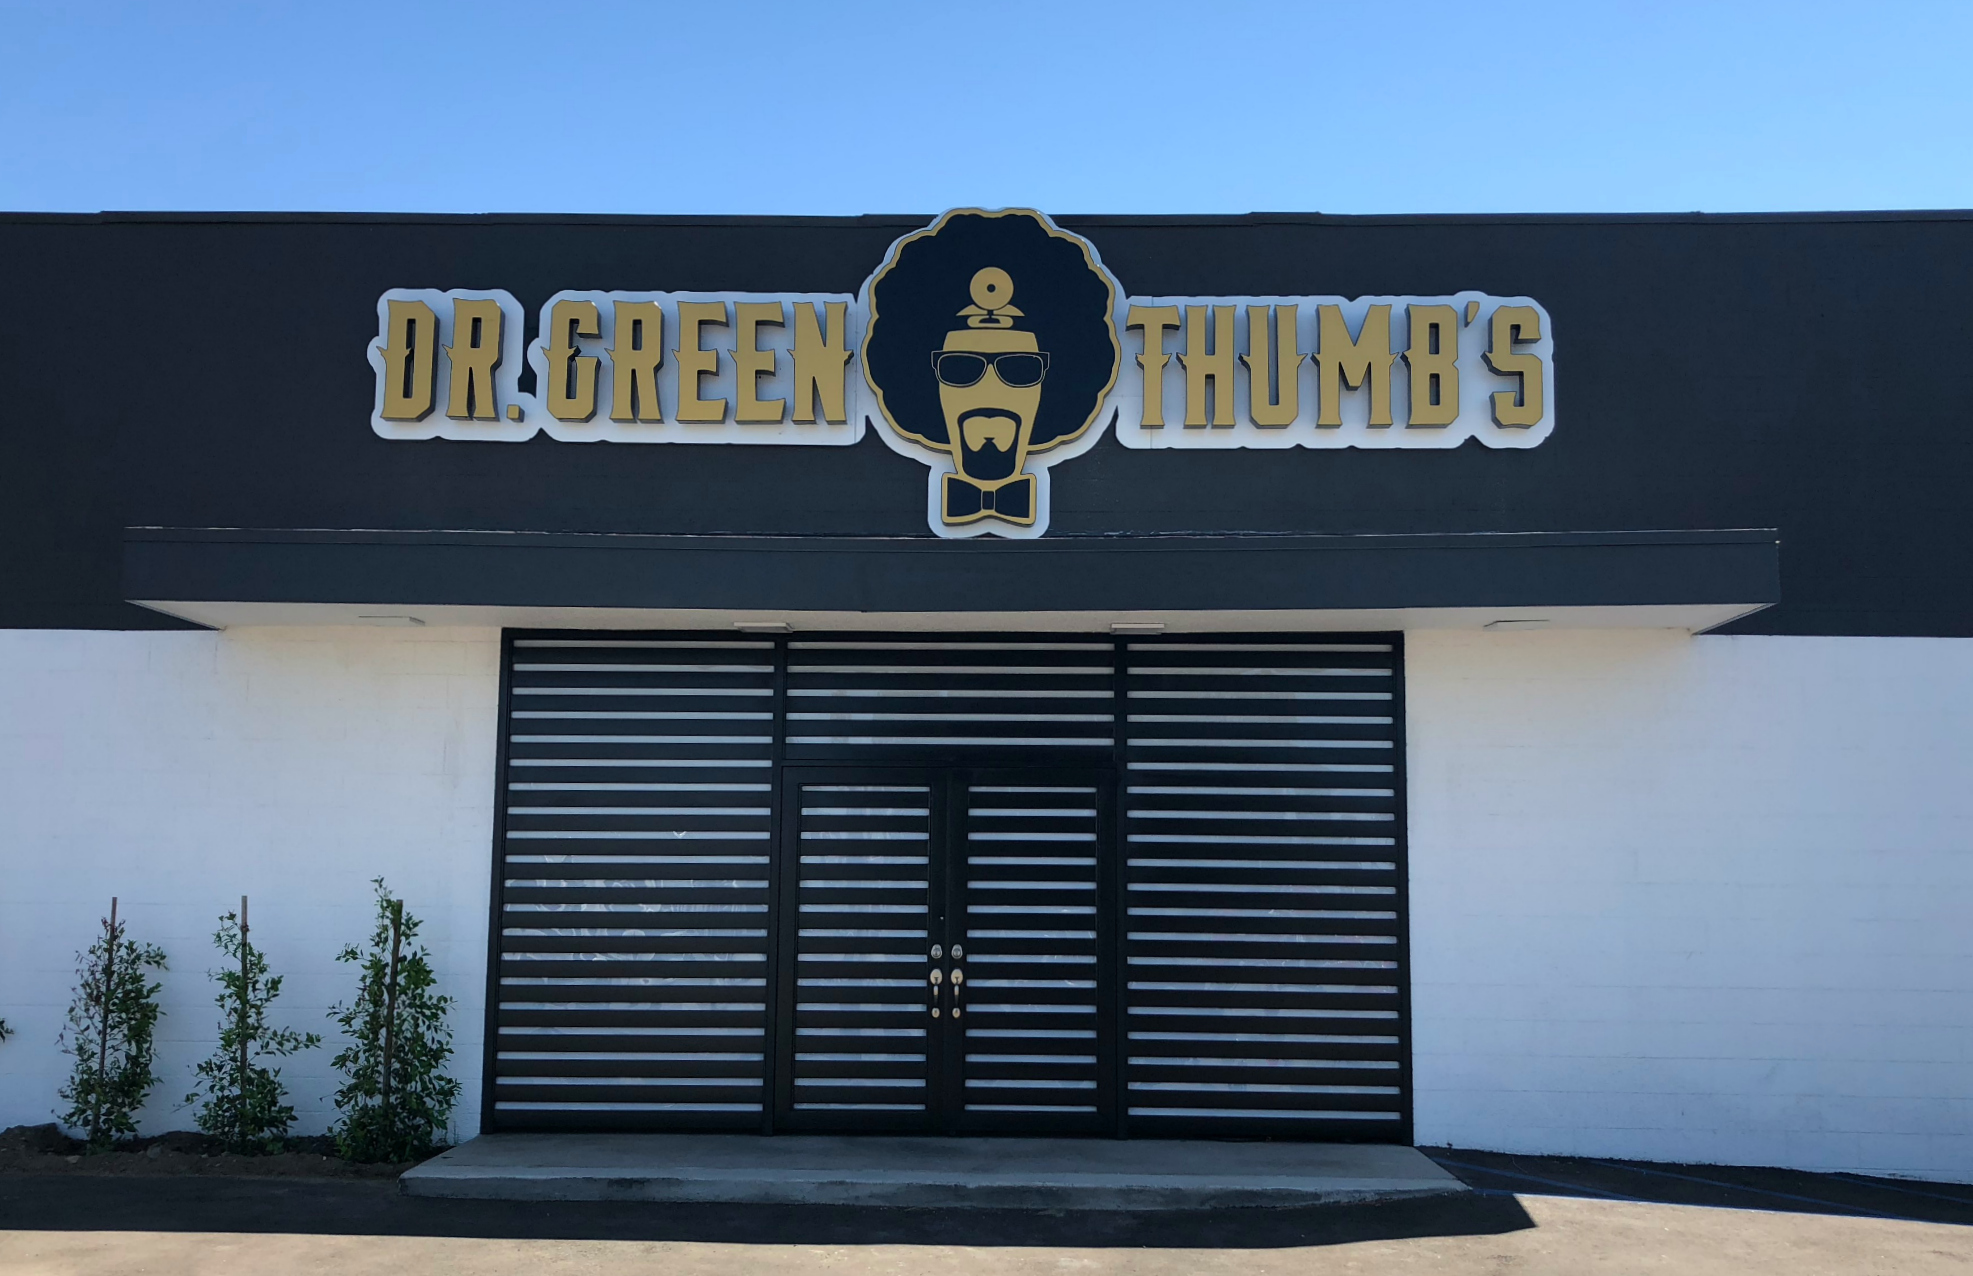 Dr  Greenthumb Is the Valley's New Pot Shop from Cypress